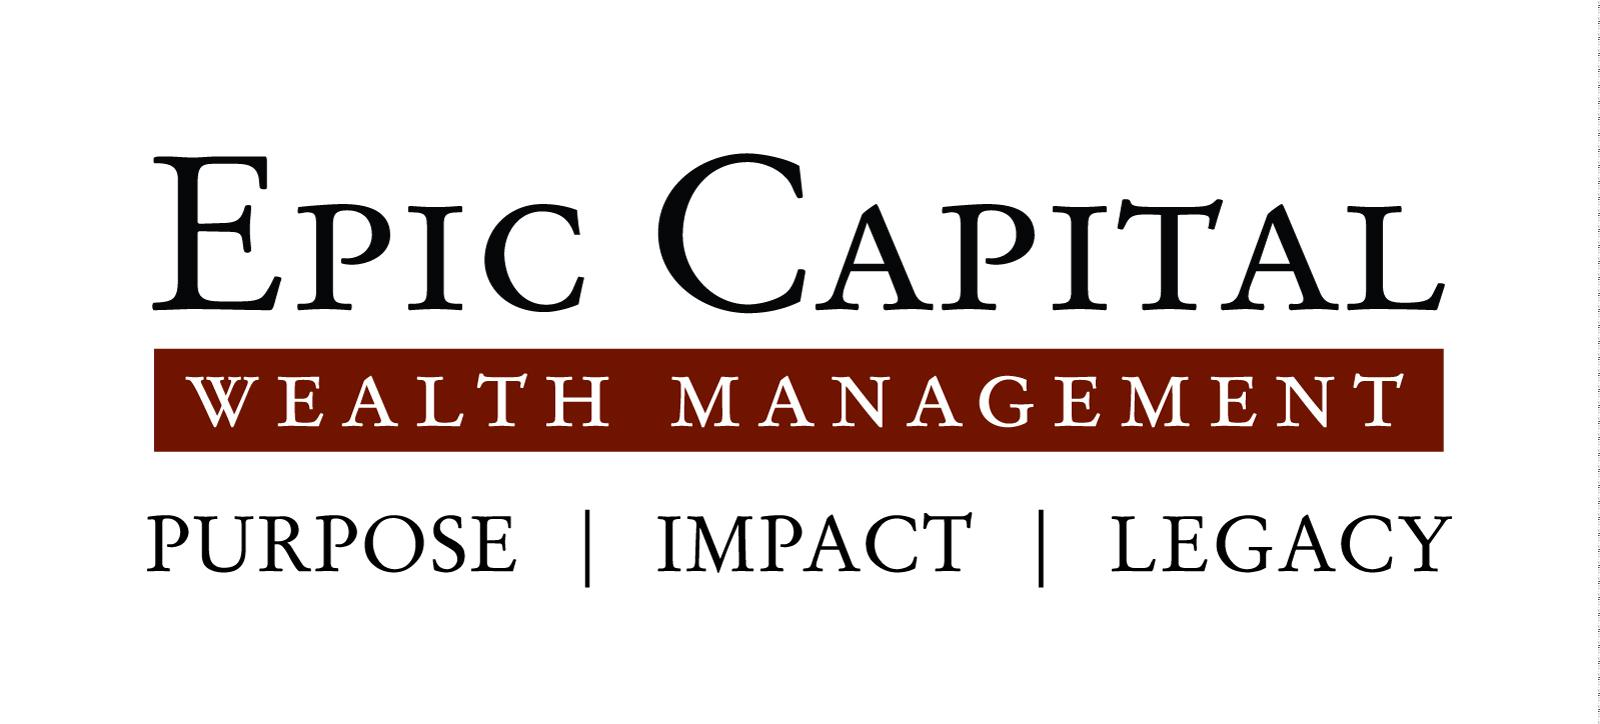 Epic Capital Wealth Management - Purpose. Impact. Legacy.